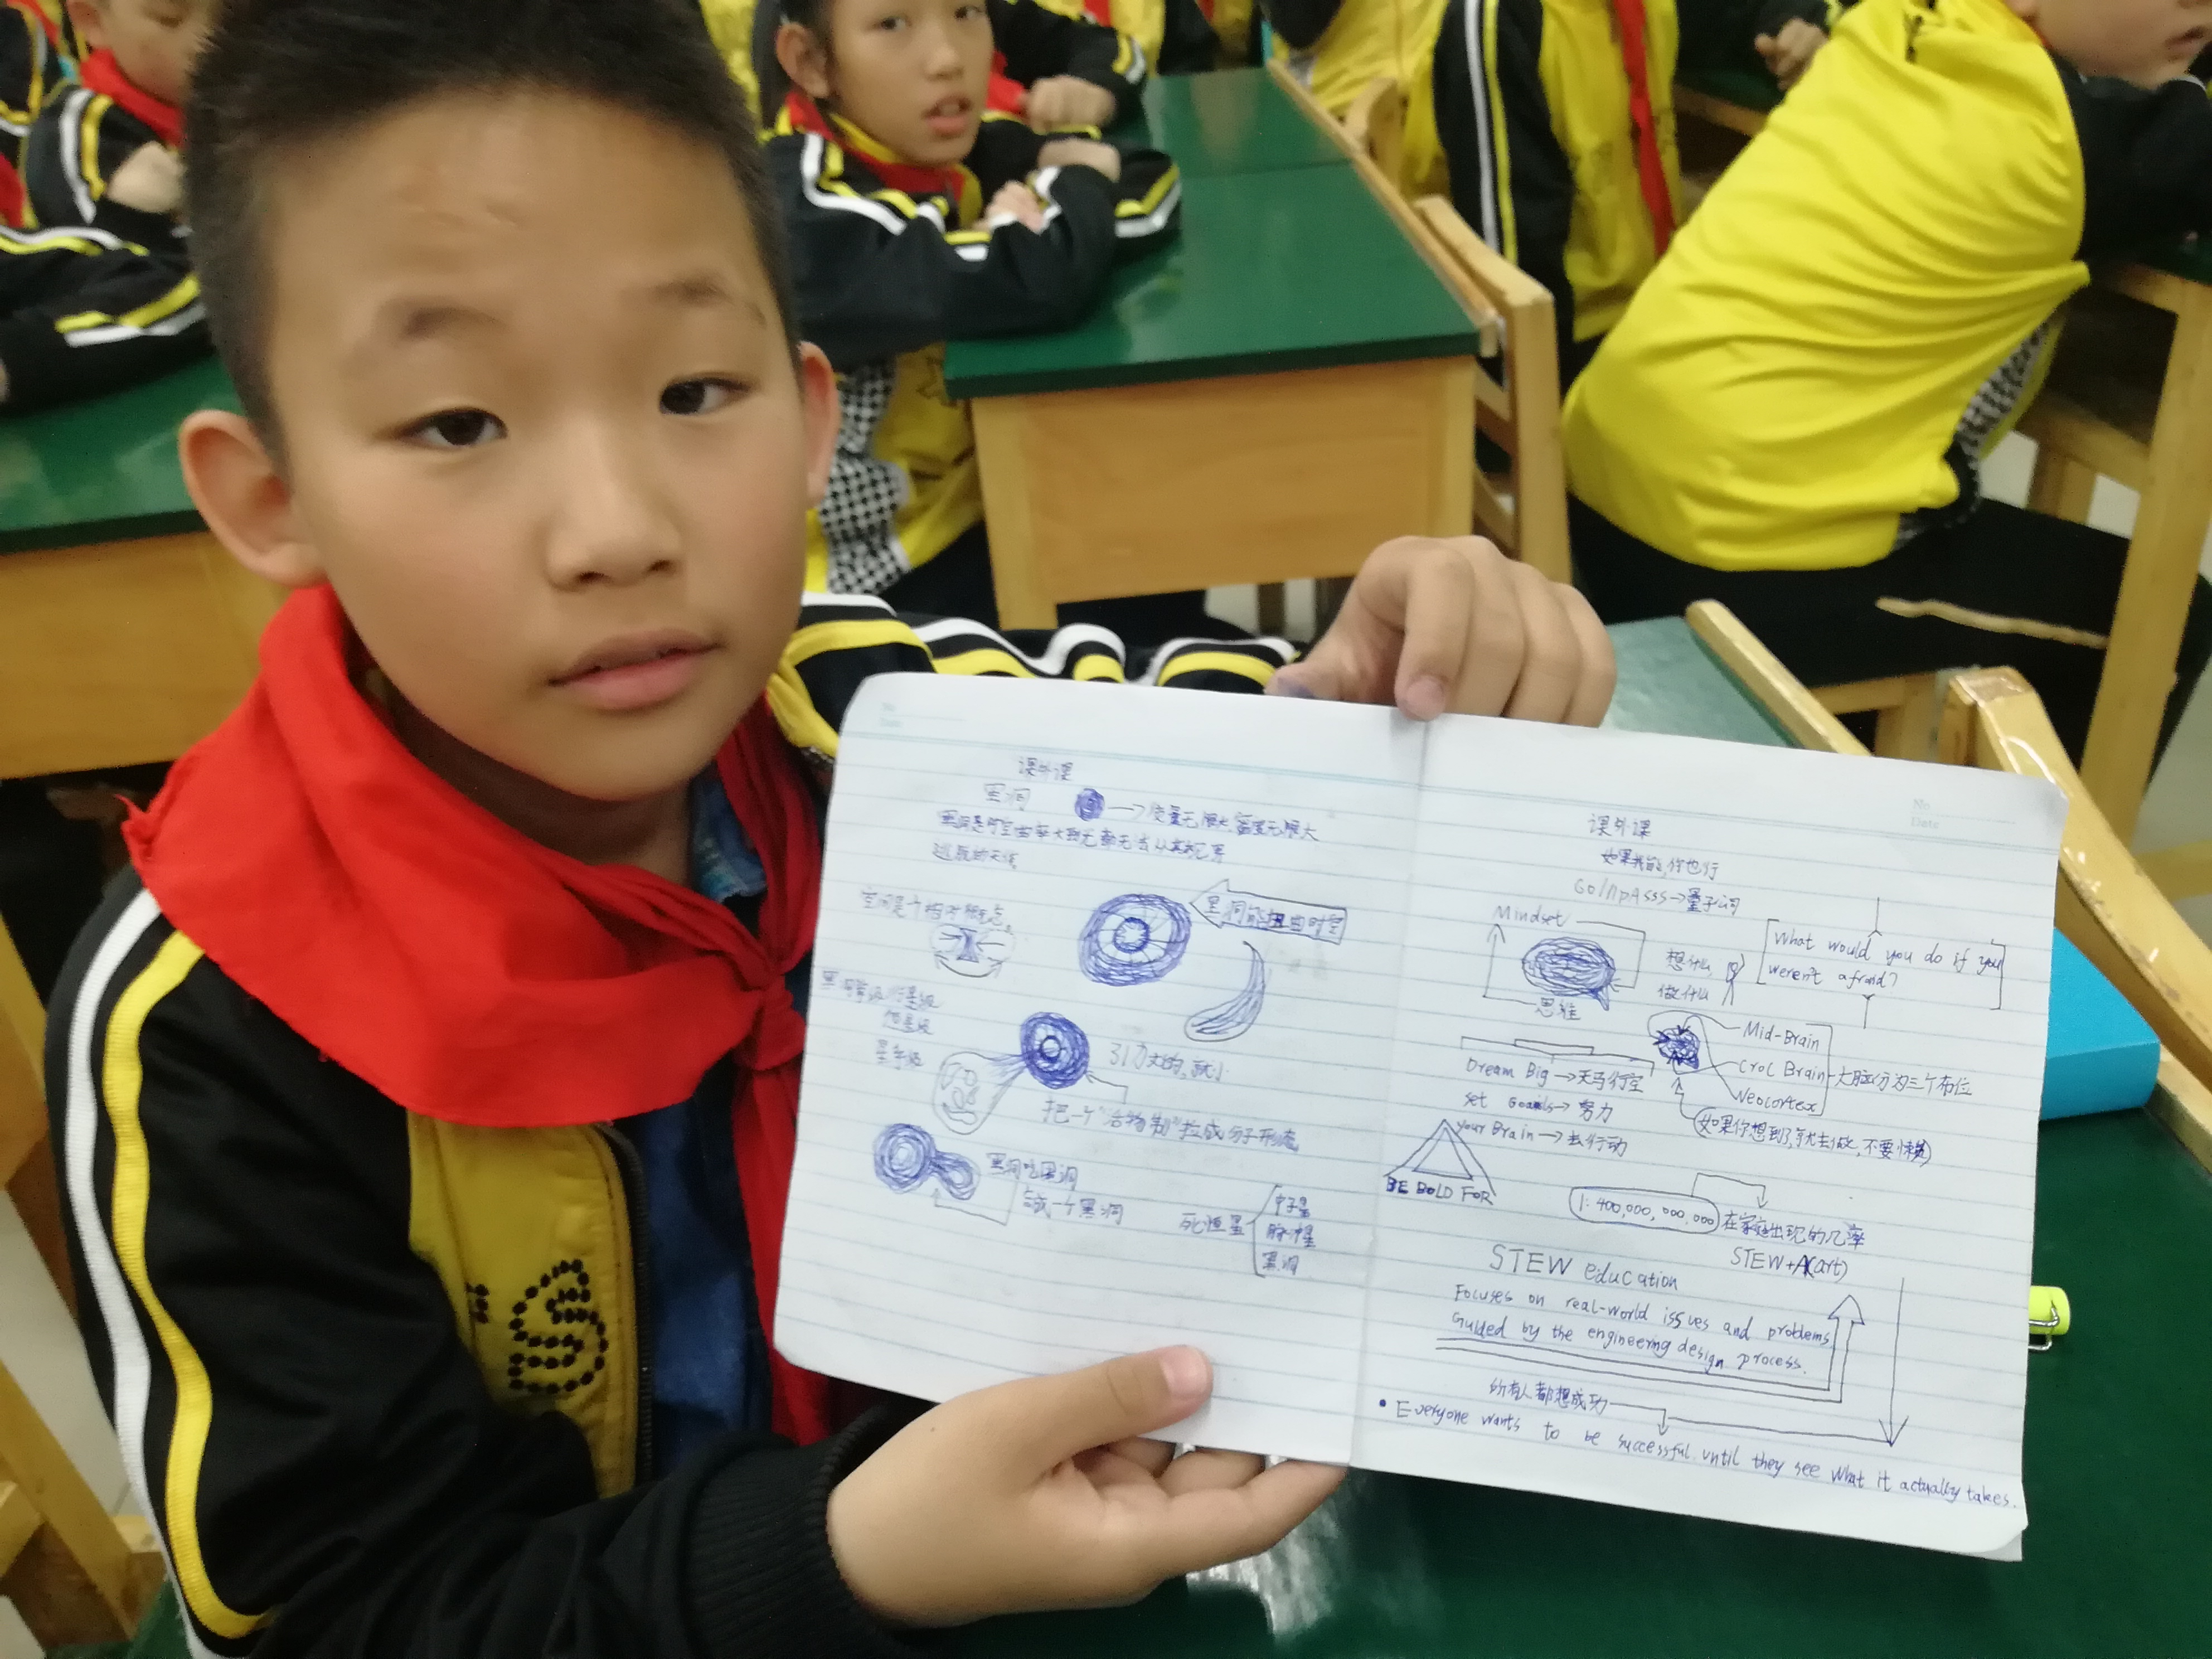 A pupil showing his notes recorded during the presentation